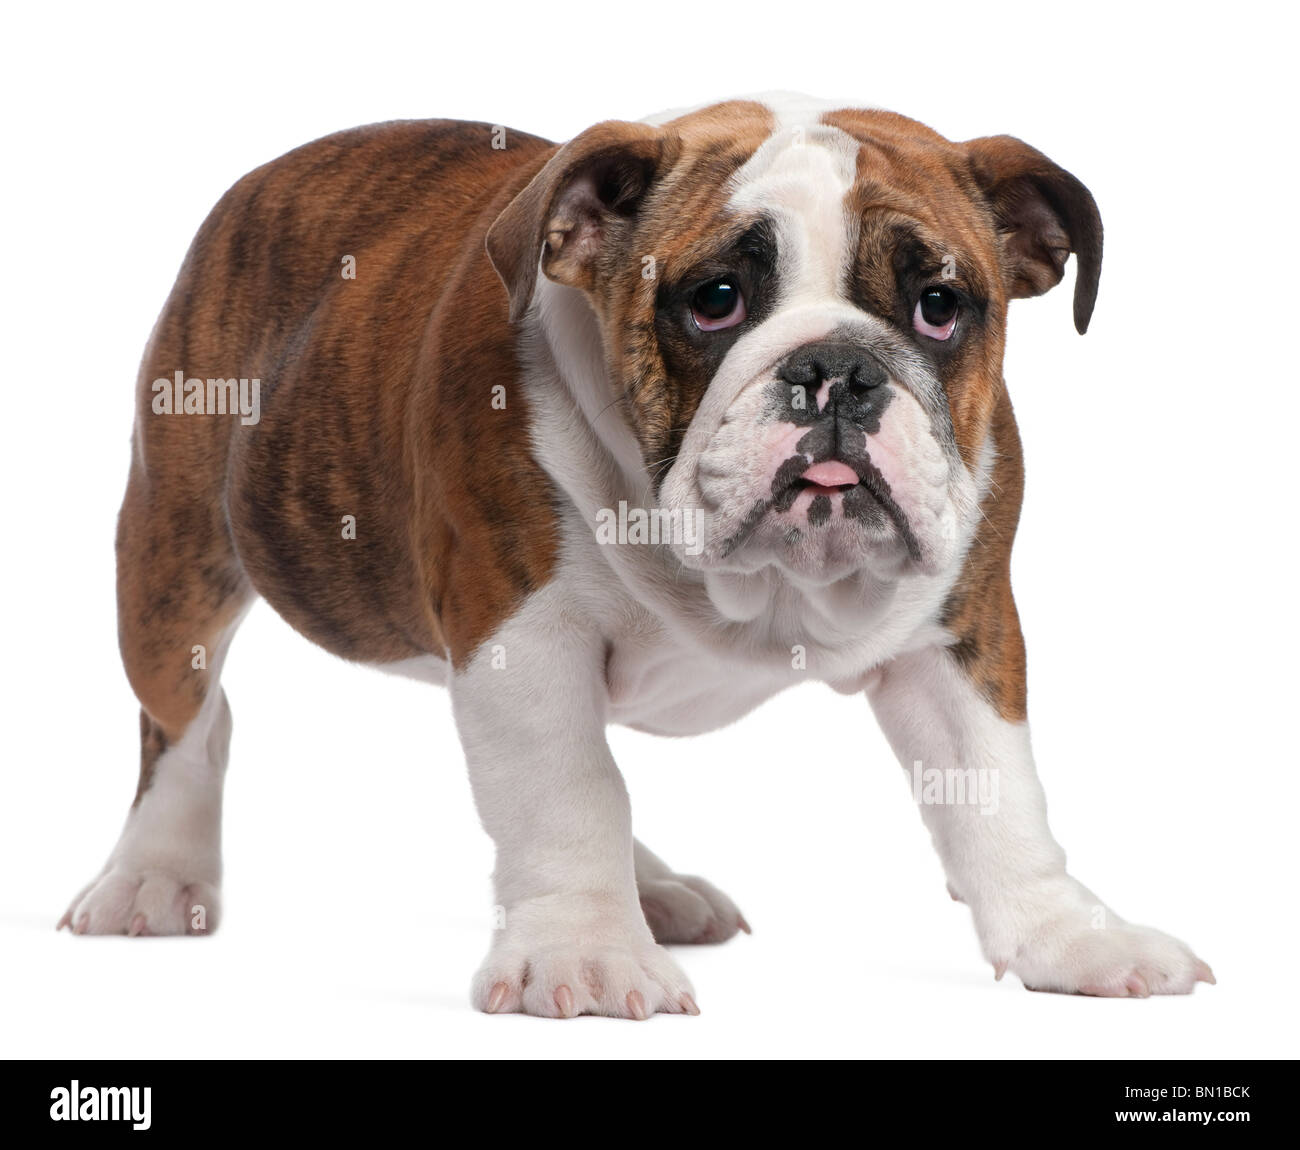 English Bulldog Puppy 4 Months Old Standing In Front Of White Stock Photo Alamy